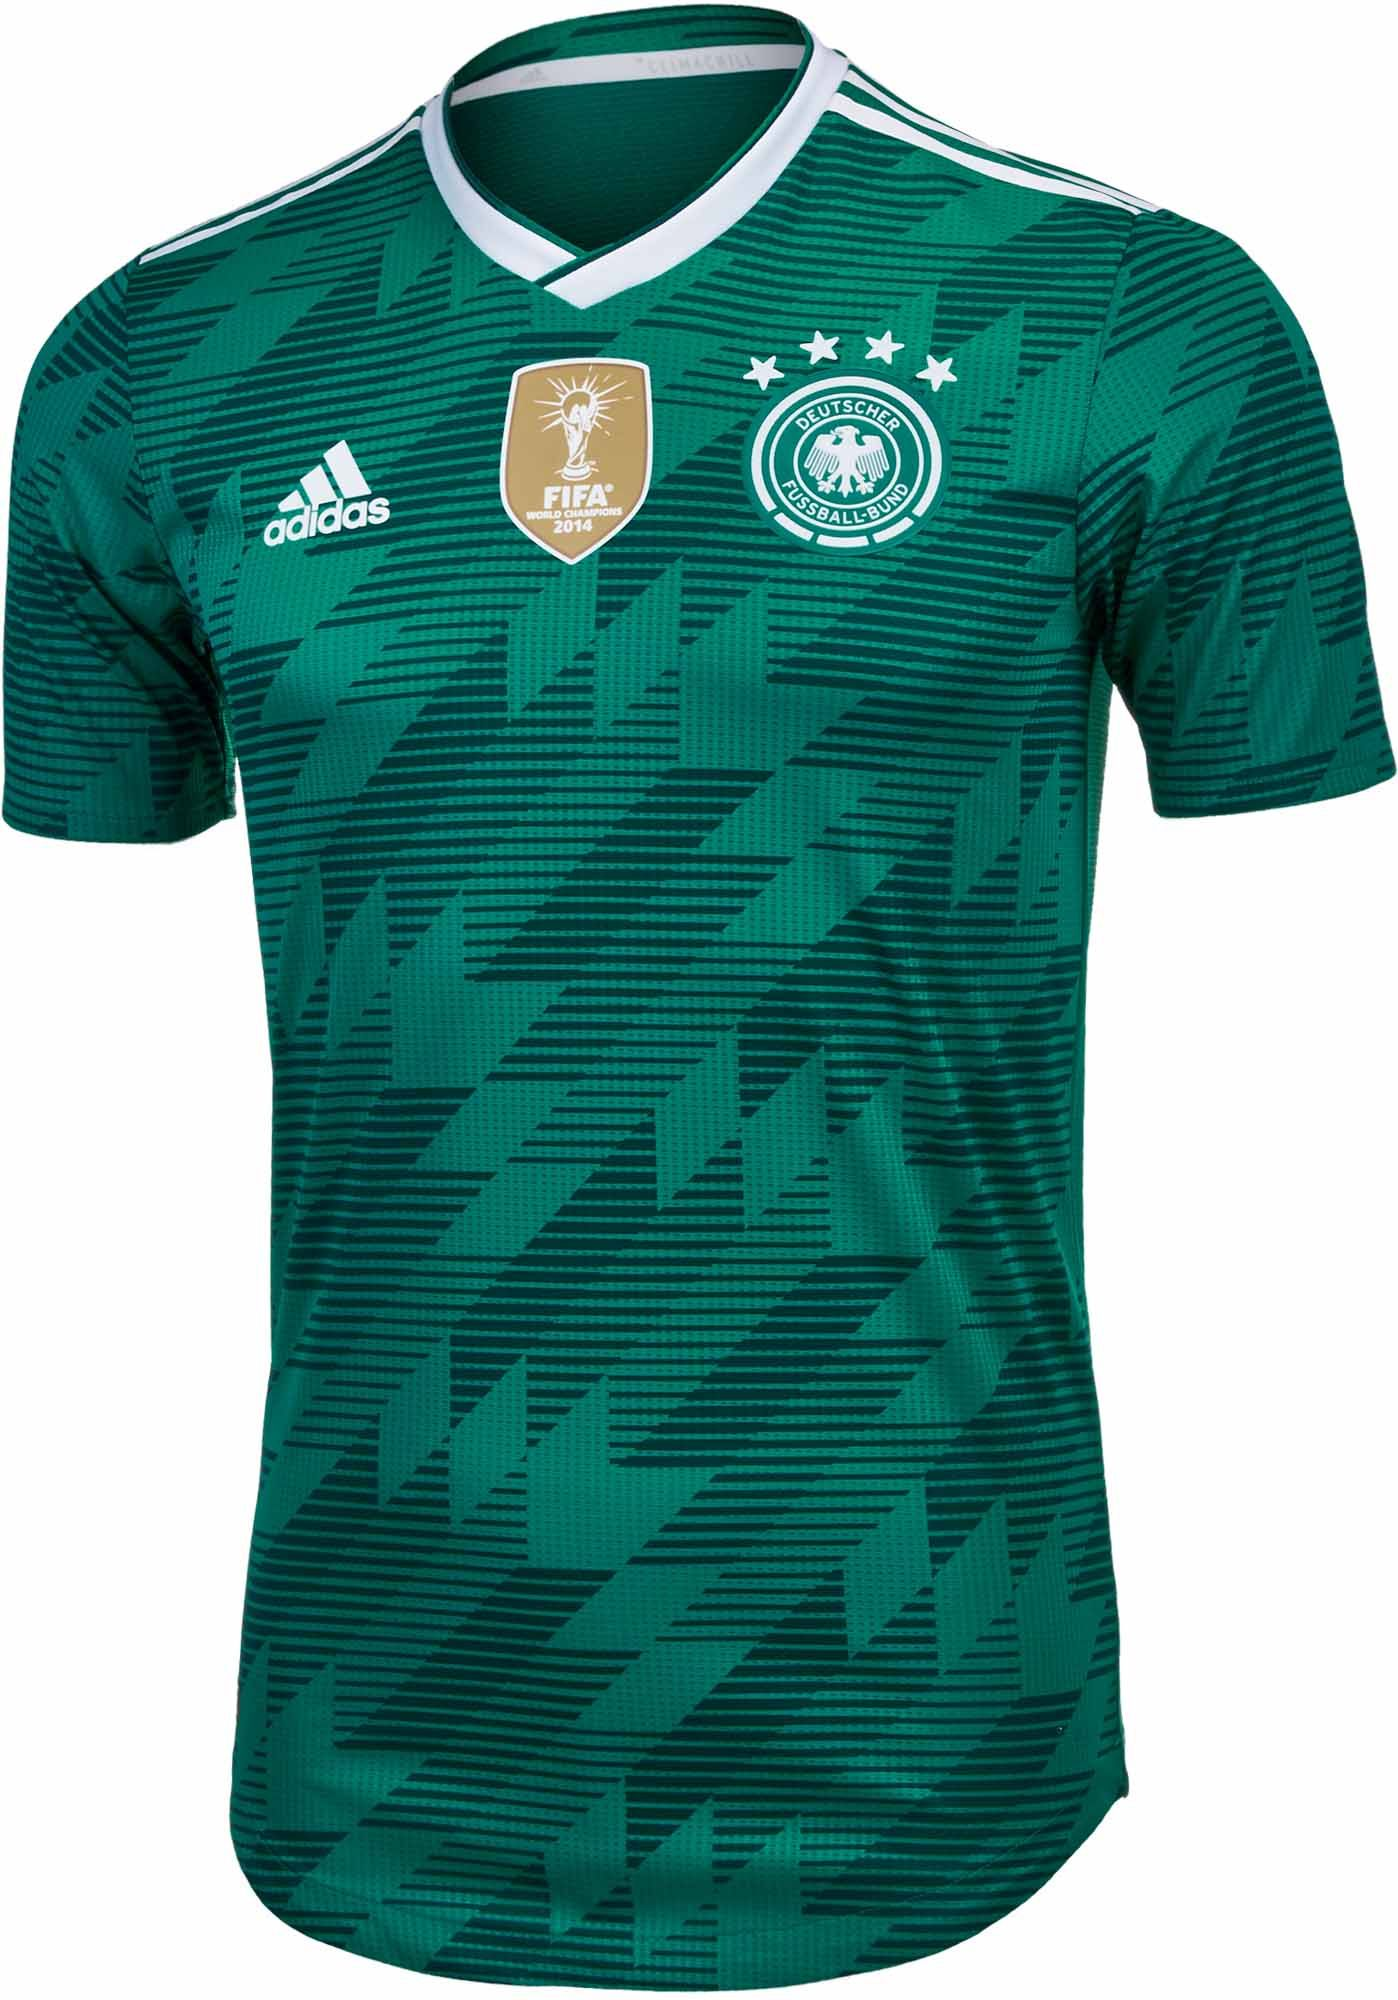 Buy the 2018 19 adidas Germany Authentic Away Jersey from www.soccerpro.com 0ae0e9d1d